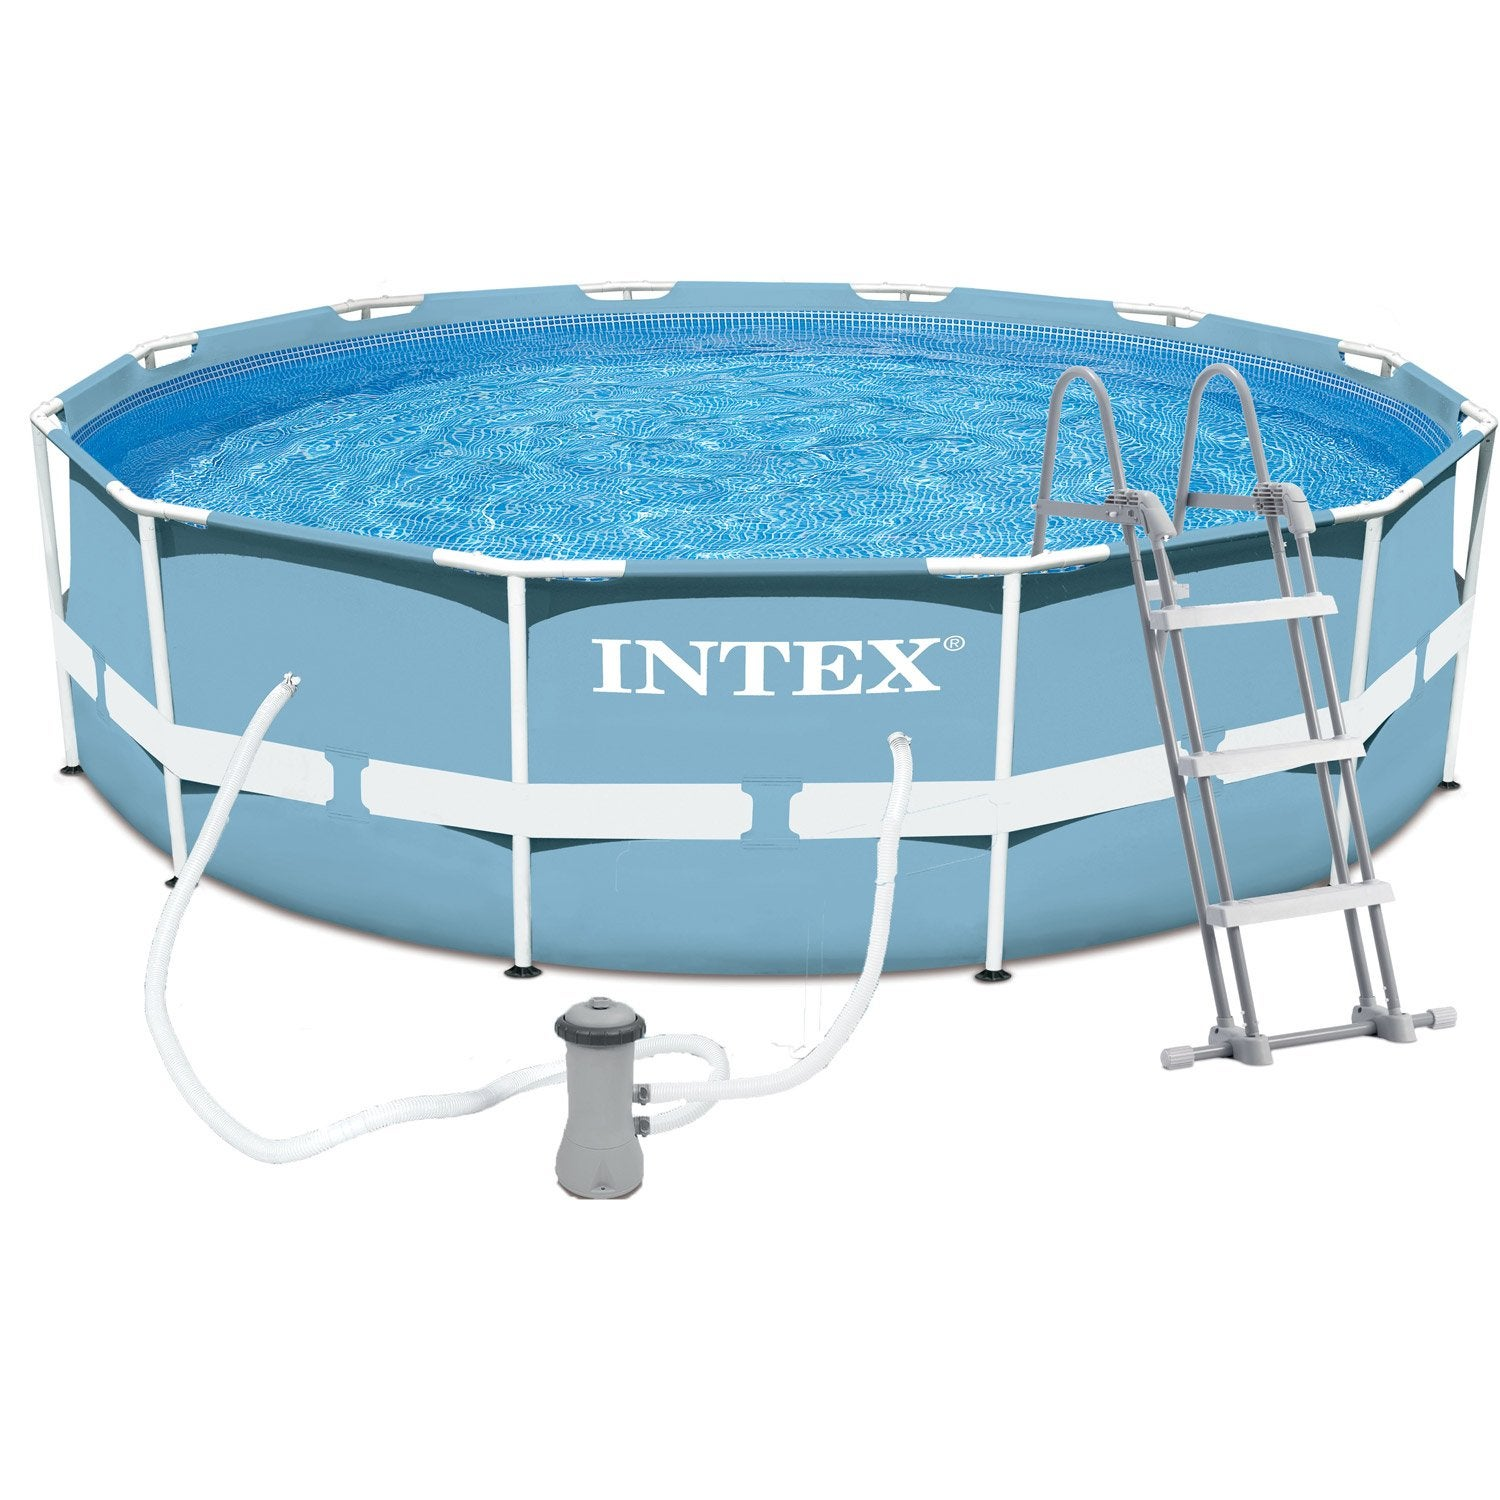 Piscine hors sol autoportante tubulaire prism frame intex for Piscine tubulaire intex 4 57 x 1 22m